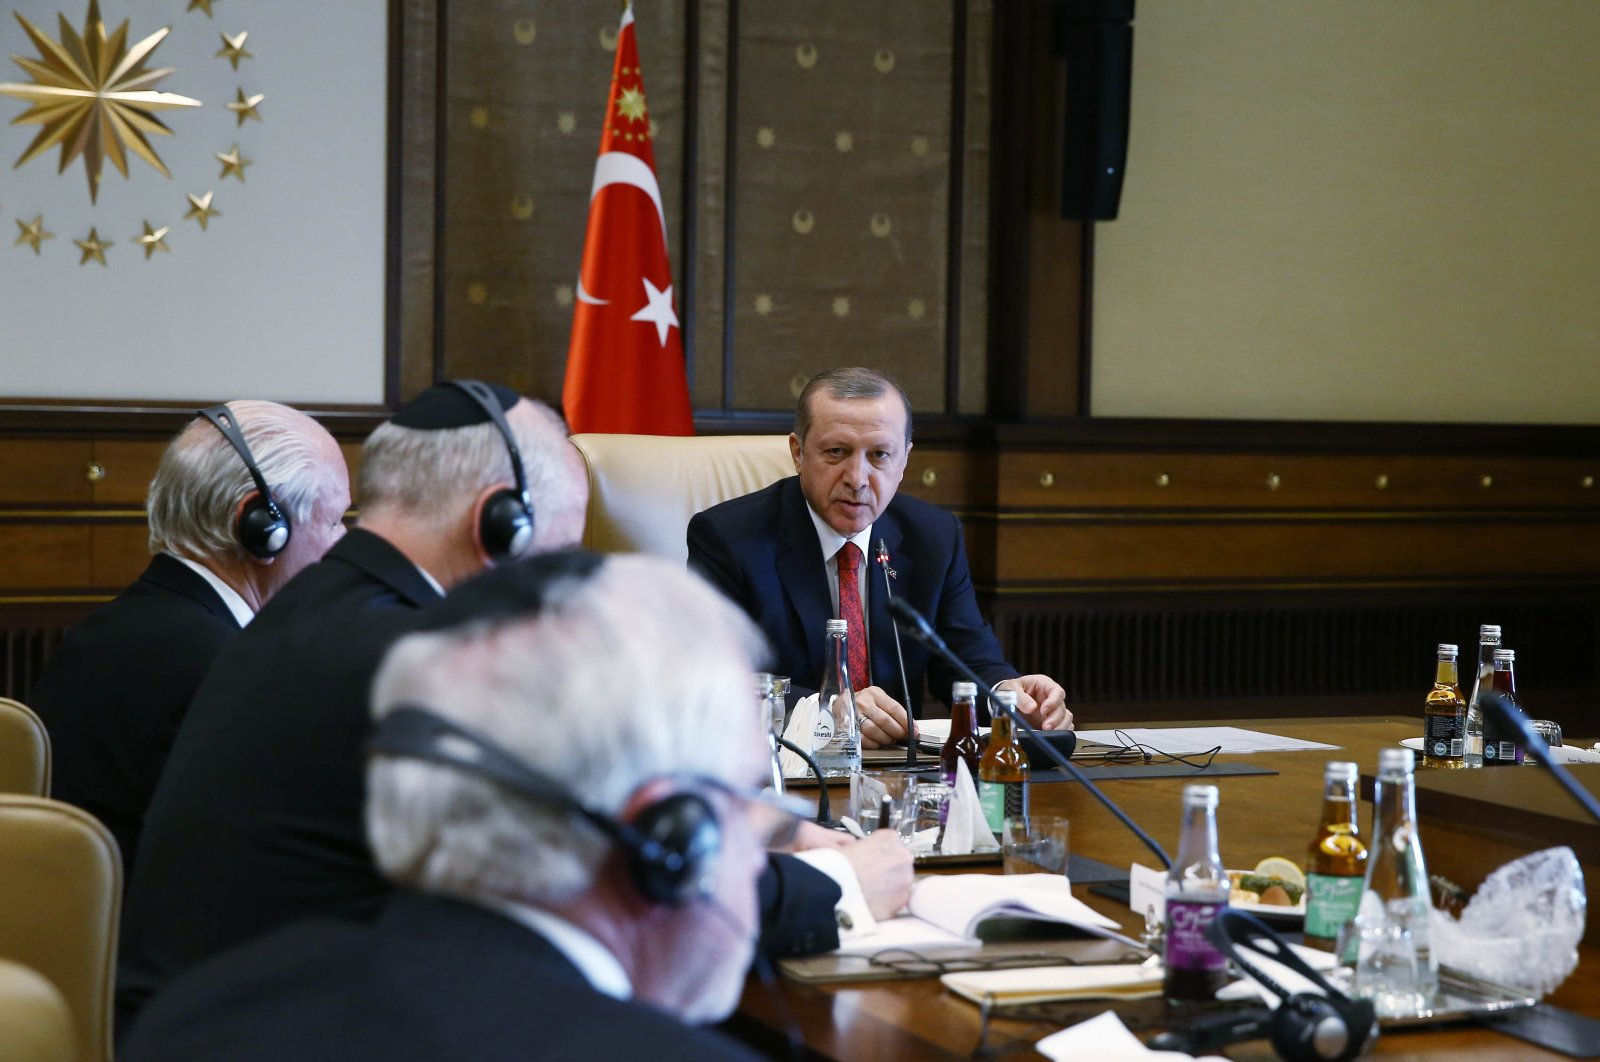 President Recep Tayyip Erdoğan attends a meeting with the Conference of Presidents of Major American Jewish Organizations at the Presidential Complex in Ankara on Feb. 9, 2016 (Presidency File Photo)